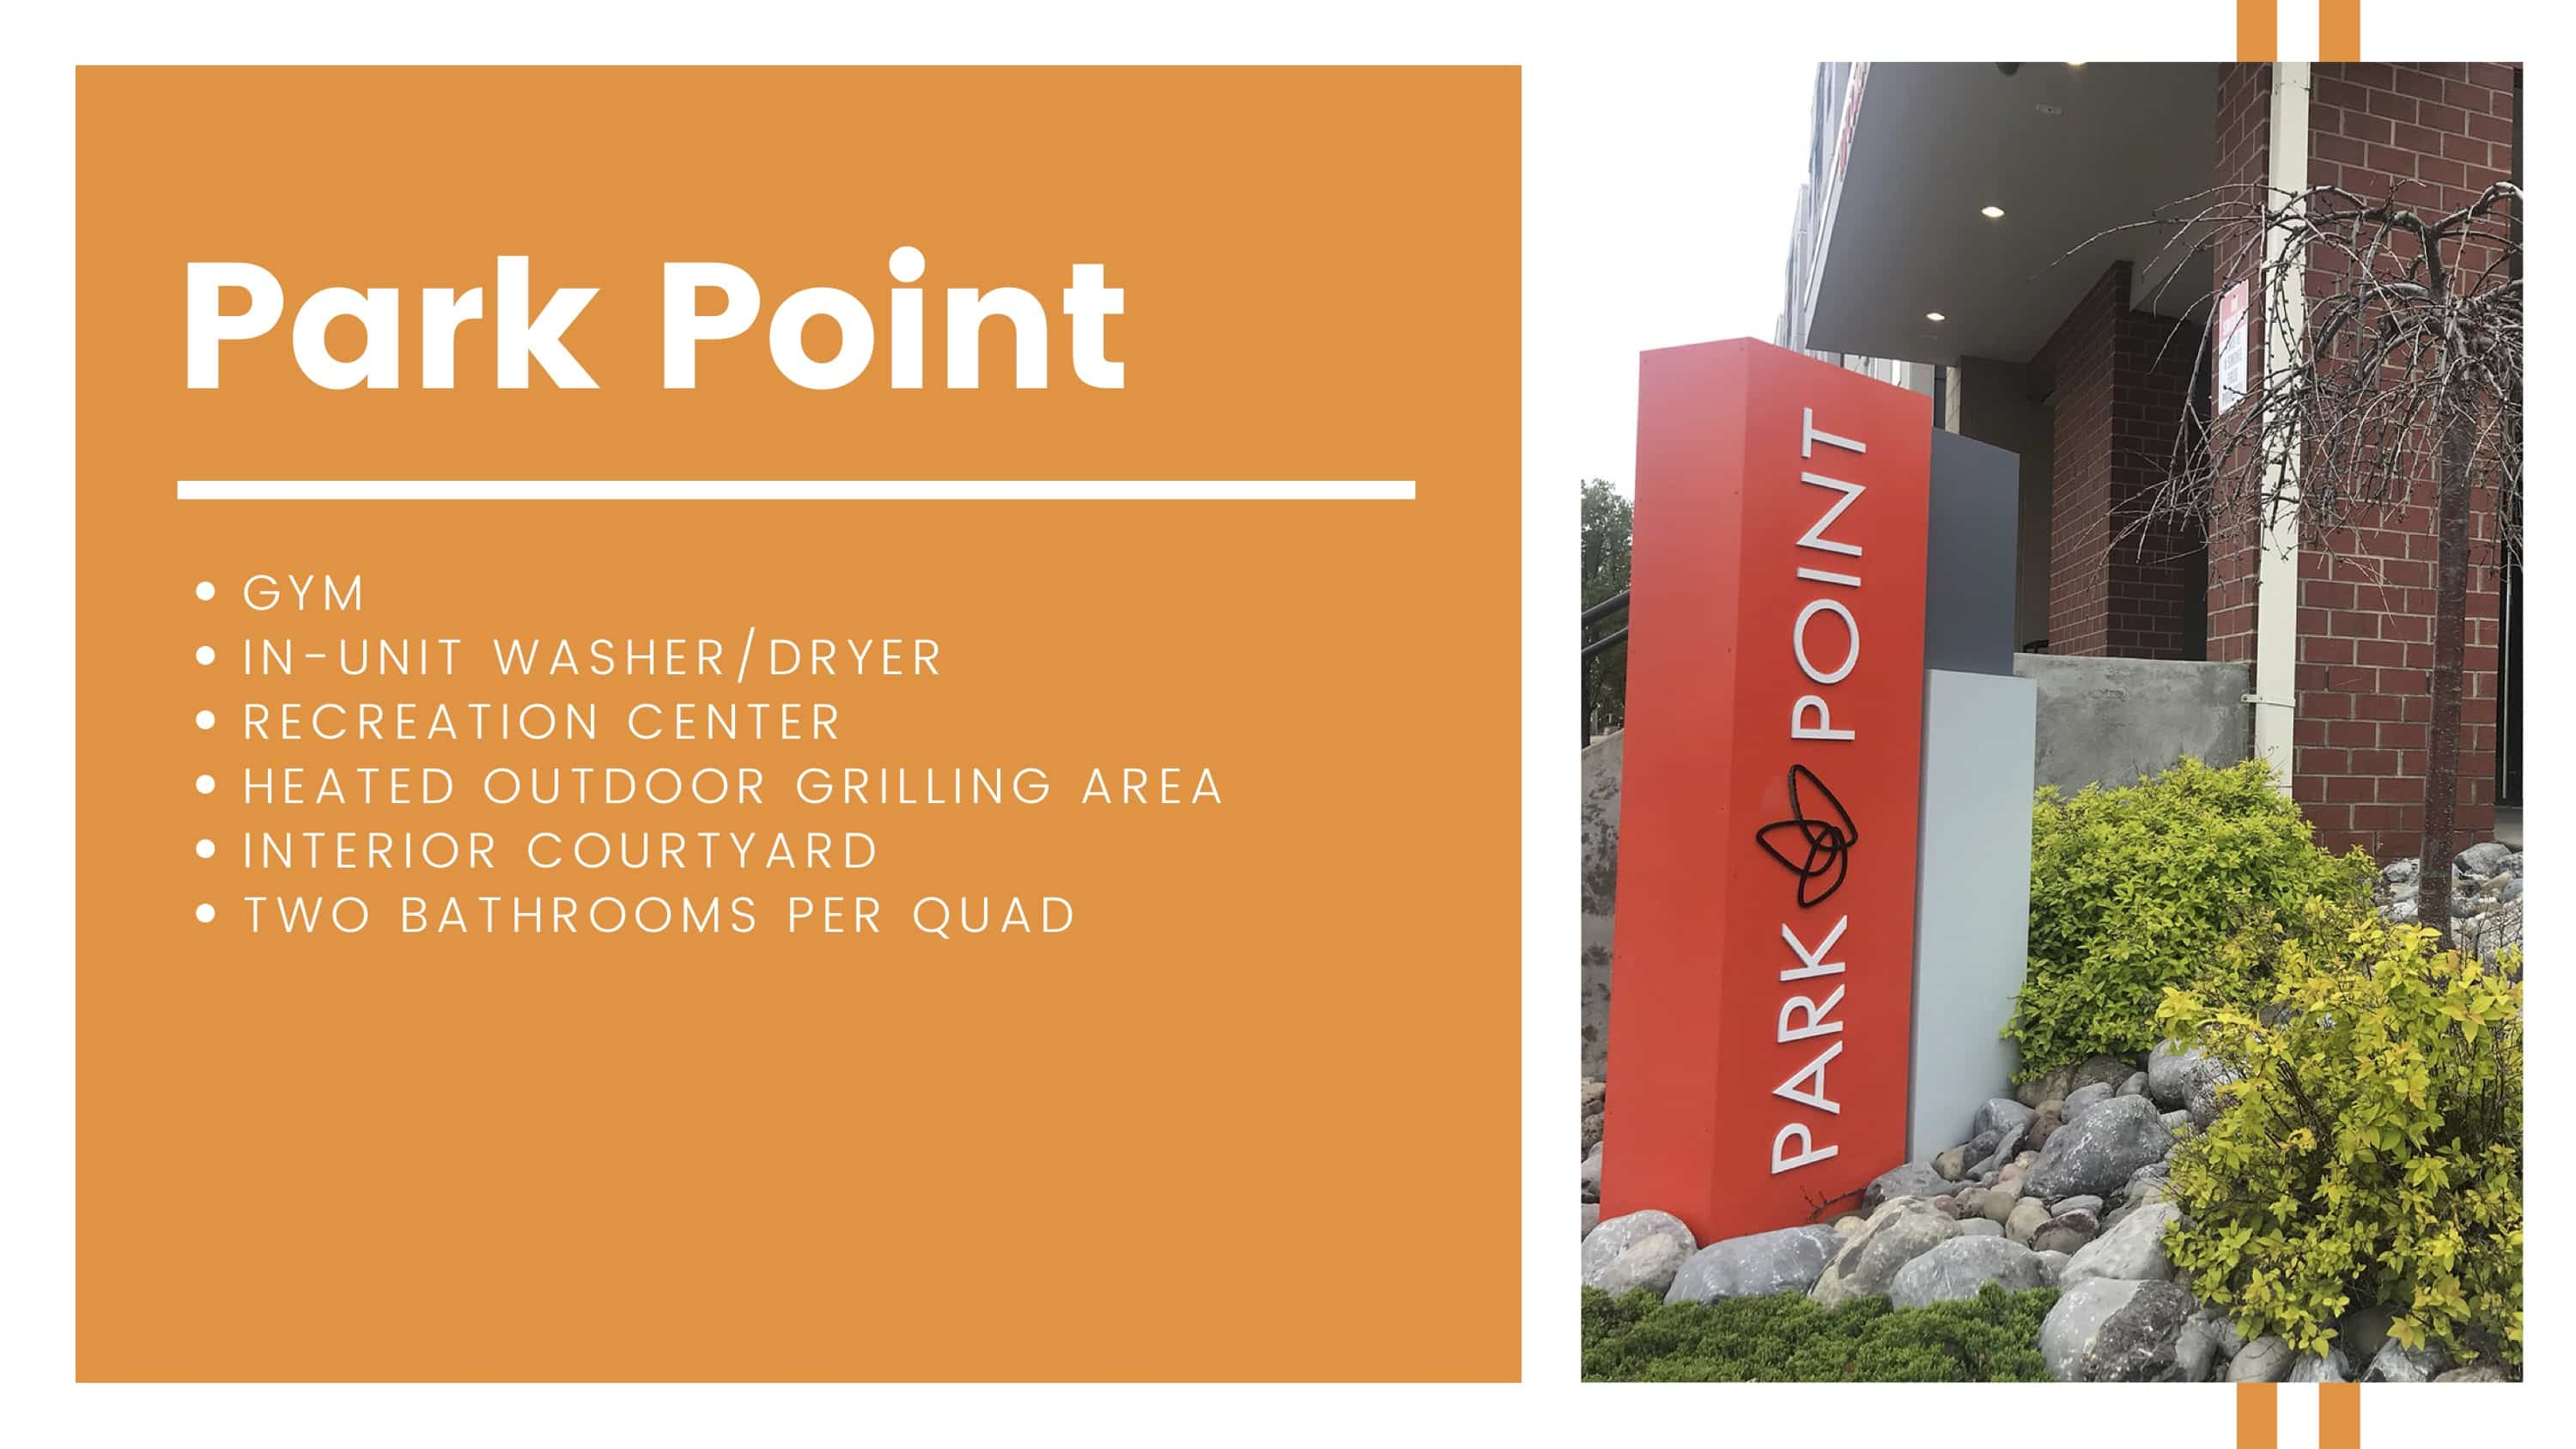 Park Point Amenities Breakdown